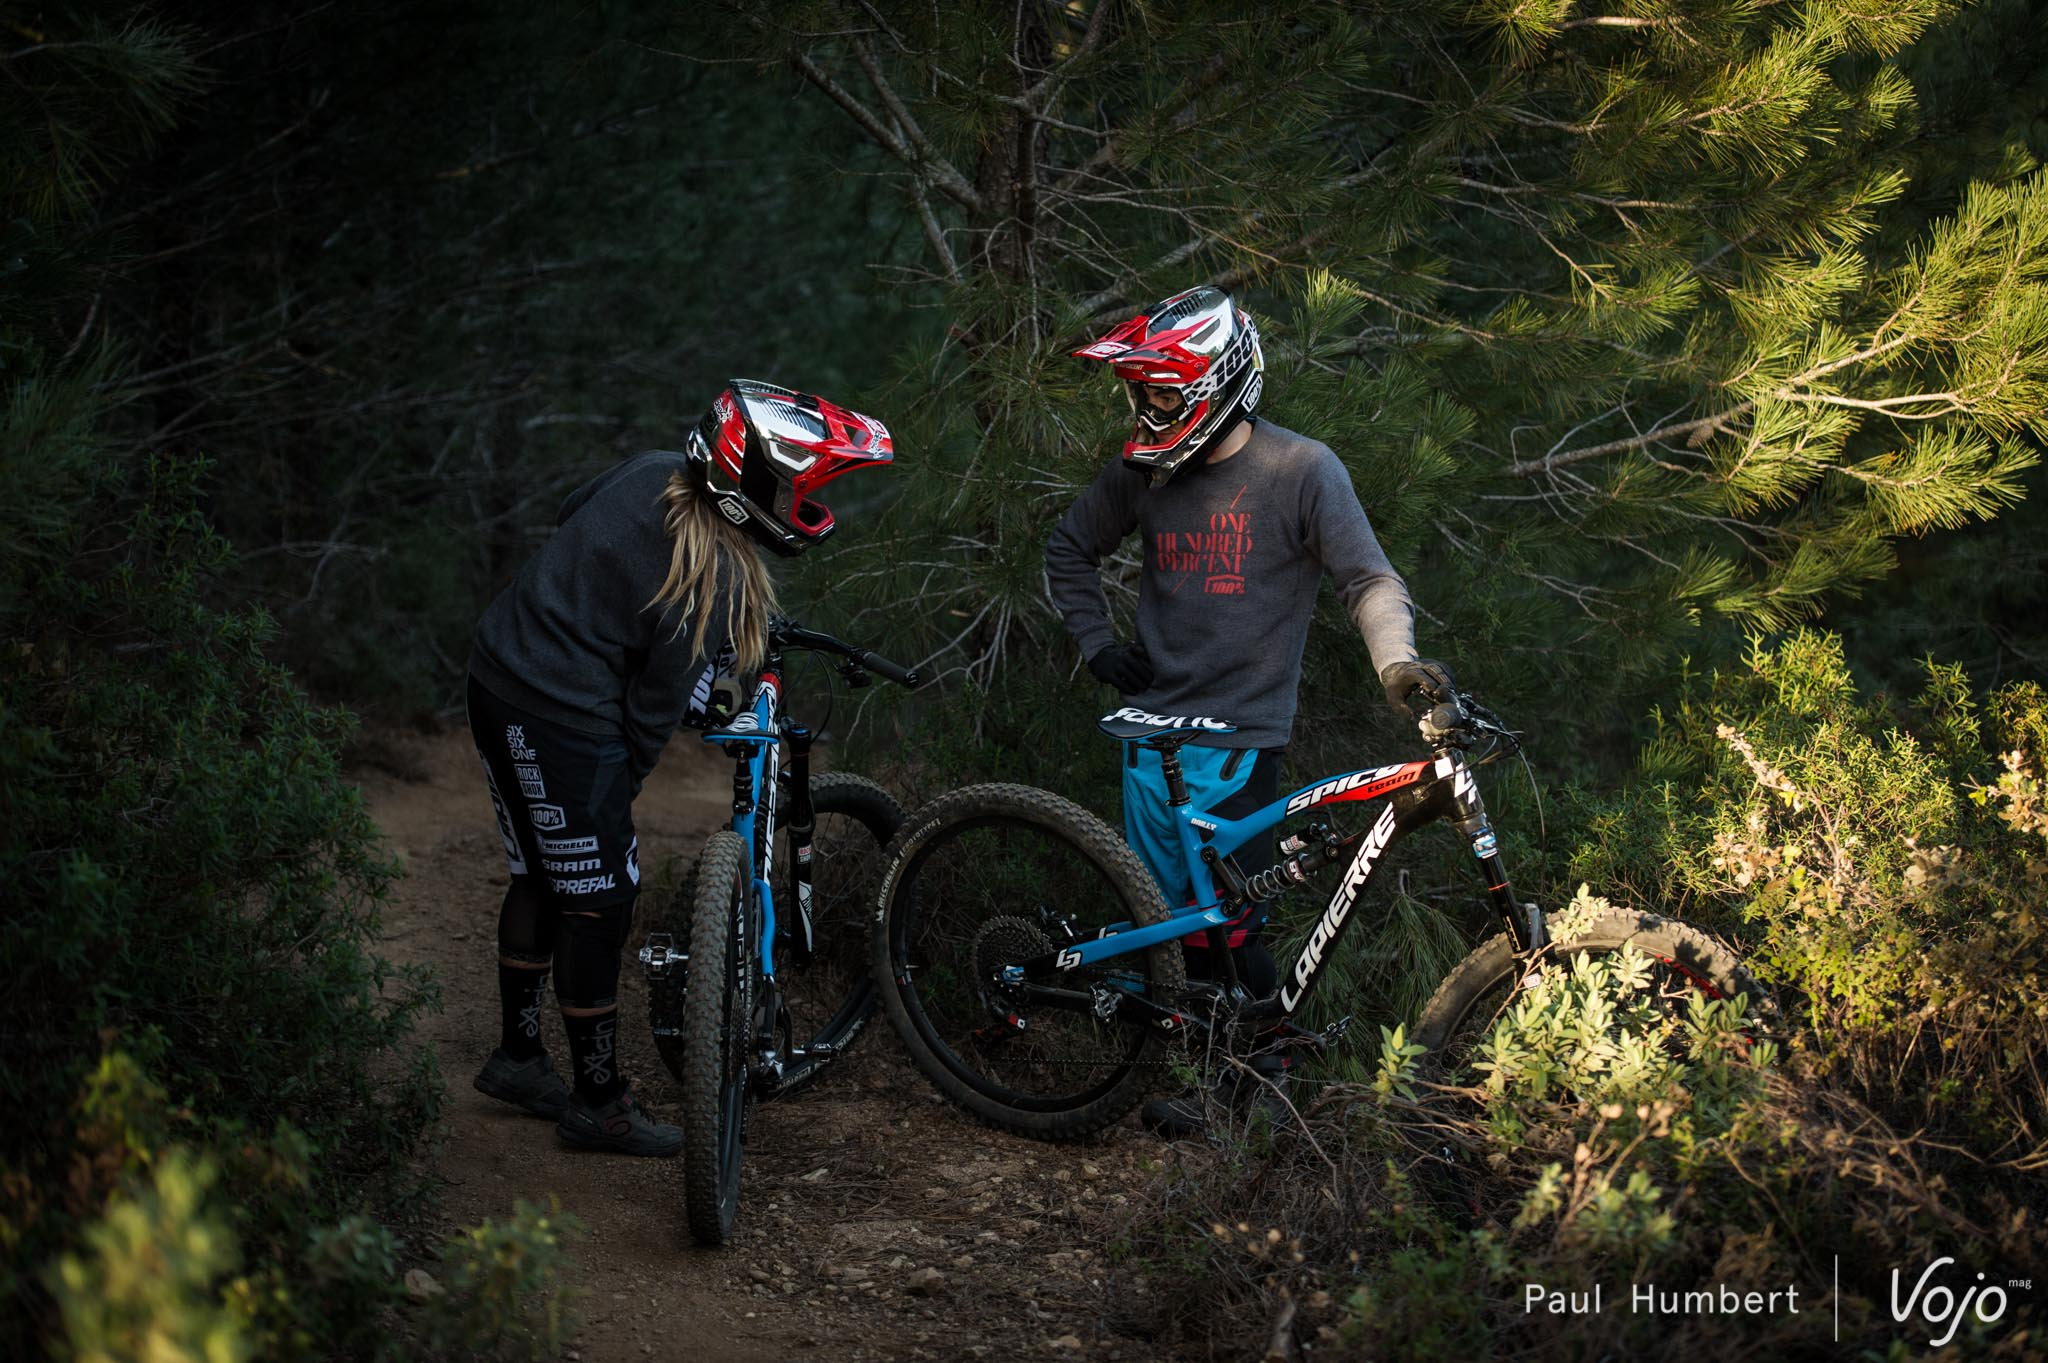 dailly-gallean-azur-bike-park-2017-vojo-paul-humbert-6